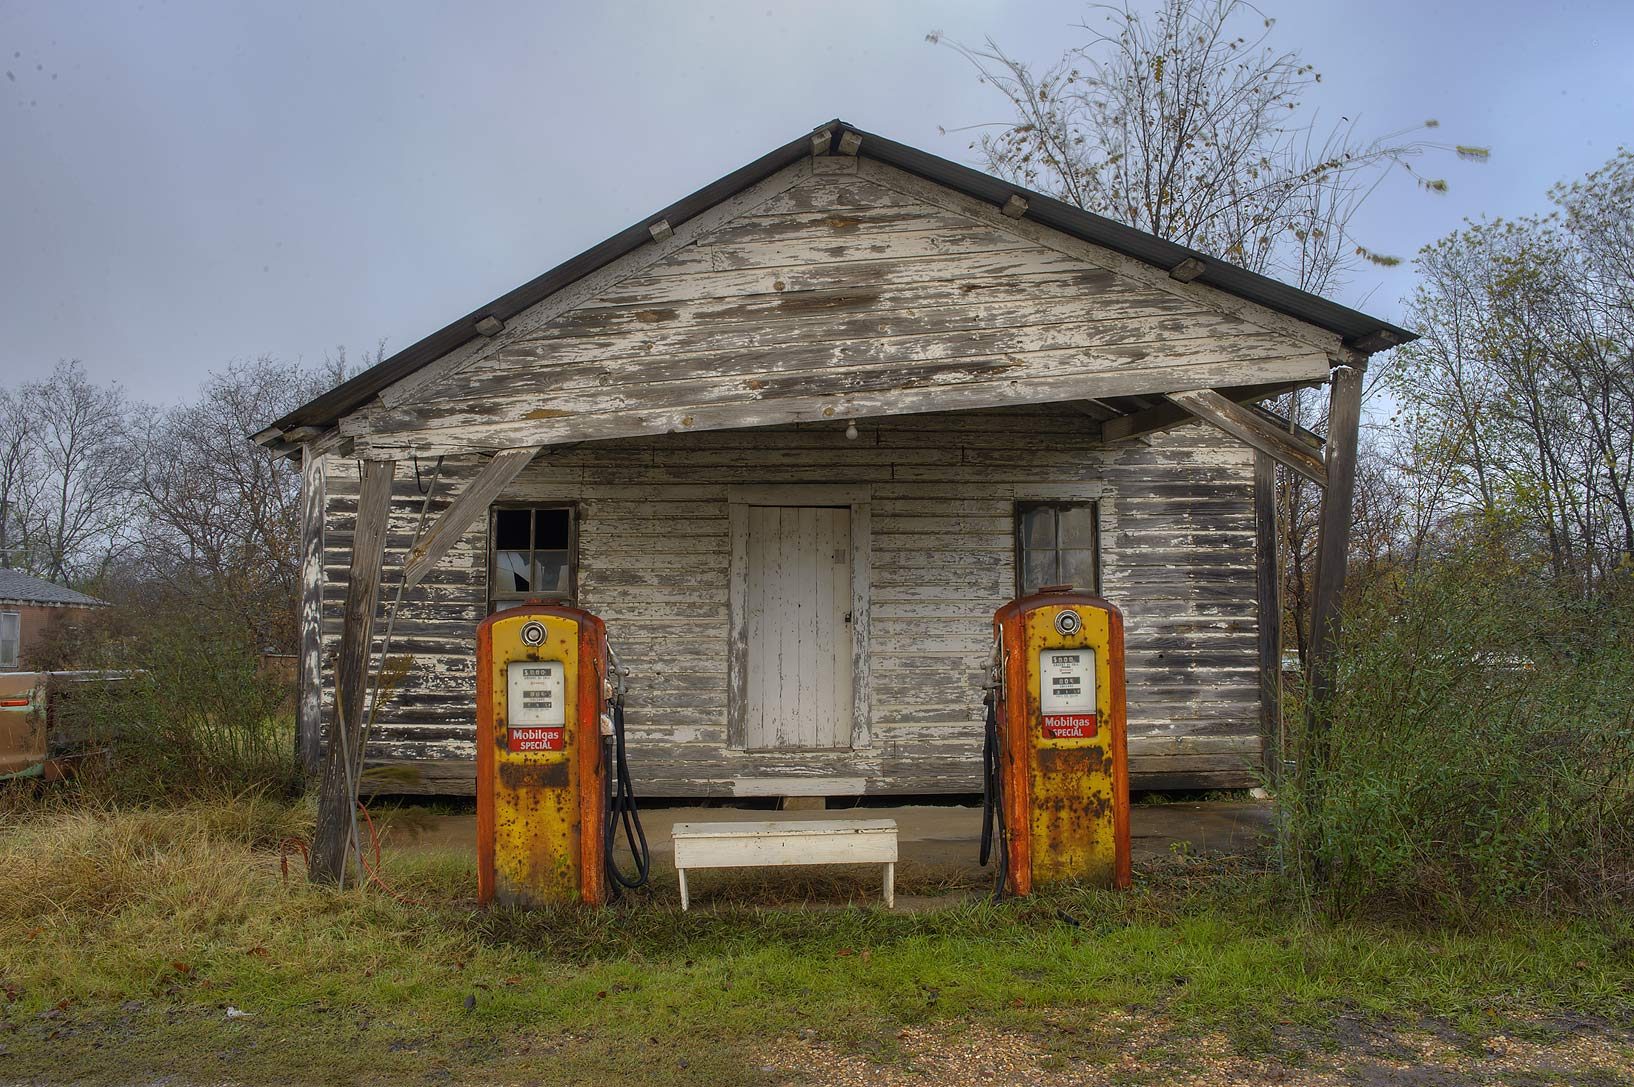 Vintage gas station near road FM 39. North Zulch, Texas